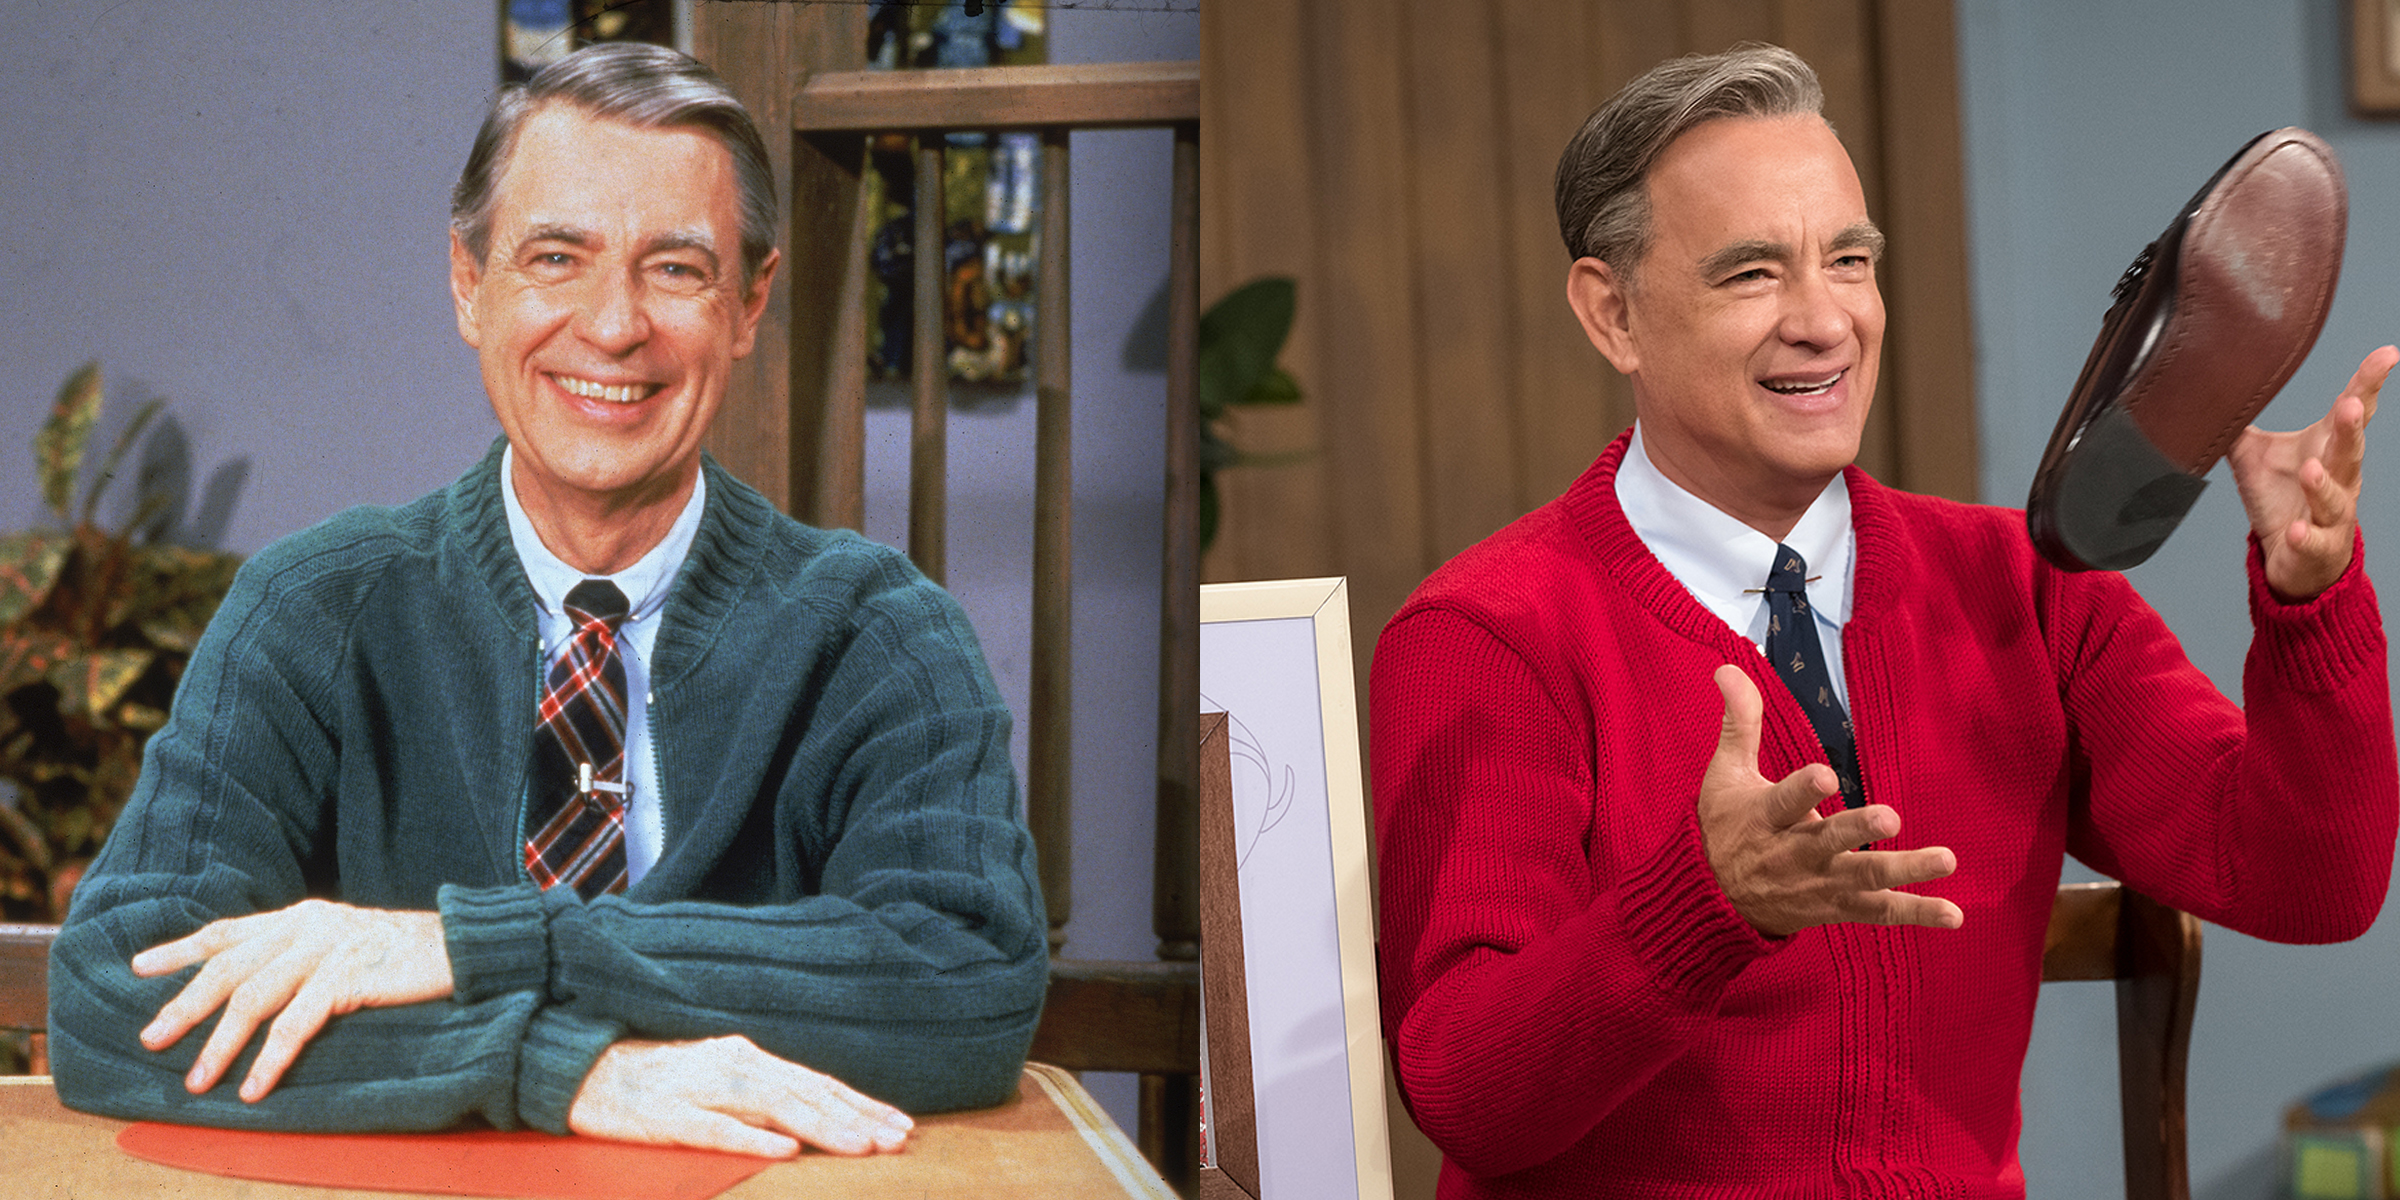 Tom Hanks Is Mister Rogers 6th Cousin Genealogists Find